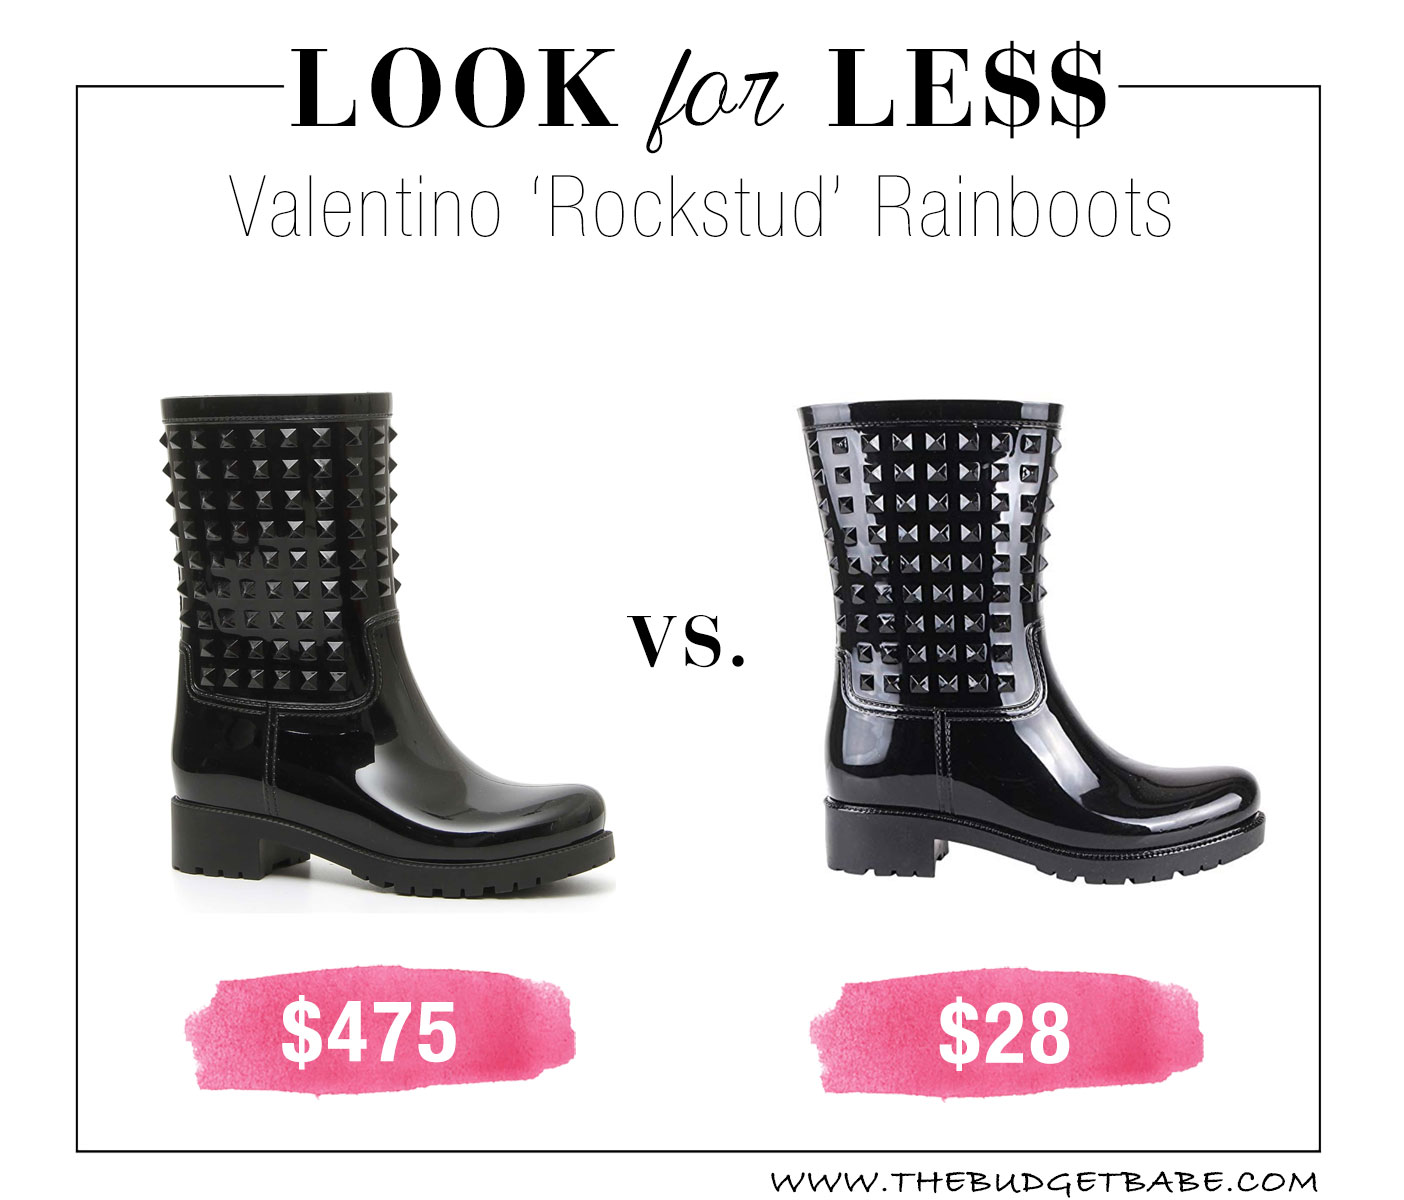 Valentino Rockstud rainboots look for less!